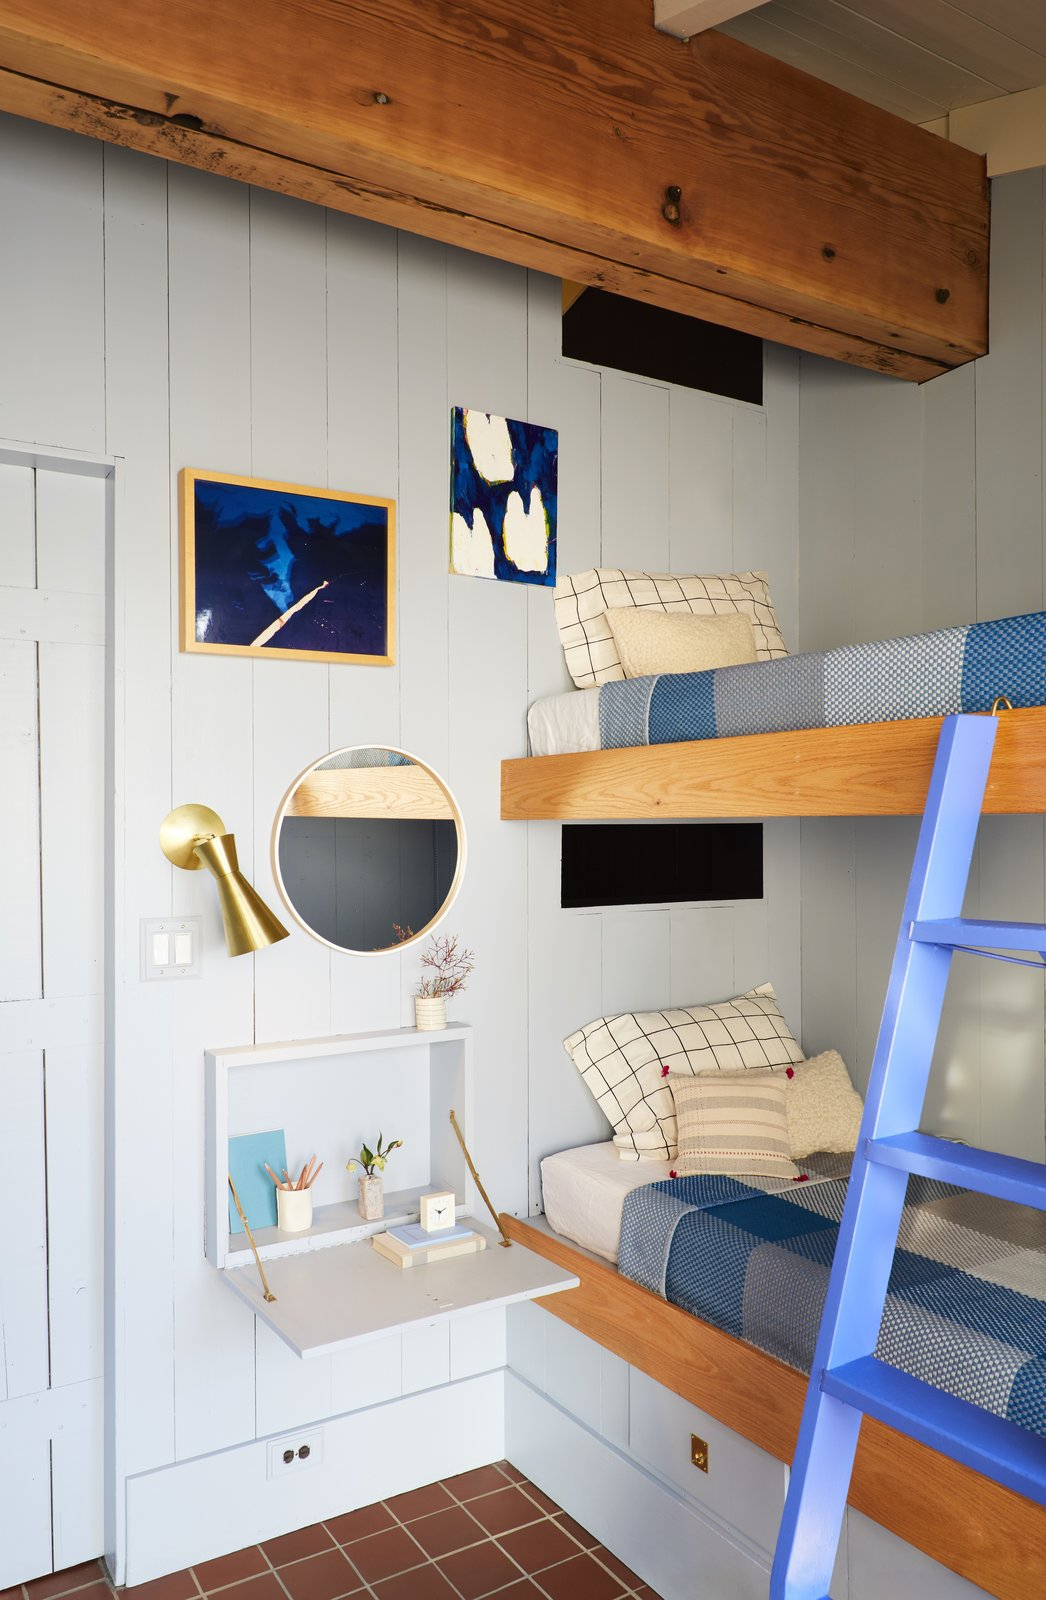 Bedroom, Bunks, Wall, Terra-cotta Tile, and Night Stands The bunk beds are original only repainted and treated to updated detailing.  Best Bedroom Night Stands Terra-cotta Tile Photos from A Hudson Valley Home's Renovation Is Guided by its Best Midcentury Feature